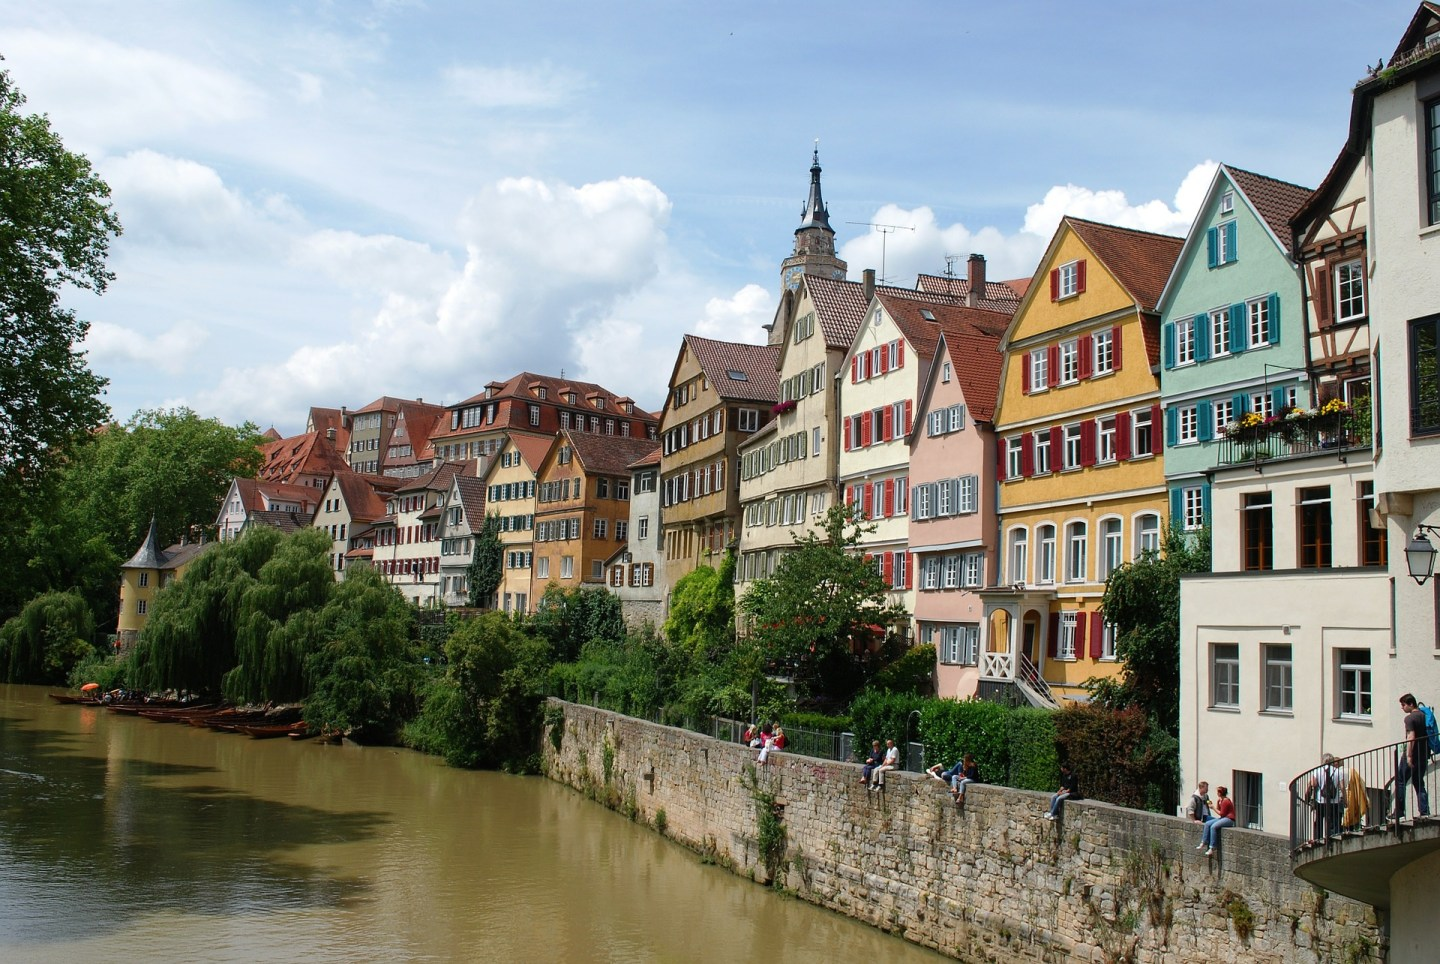 The beautiful Tübingen